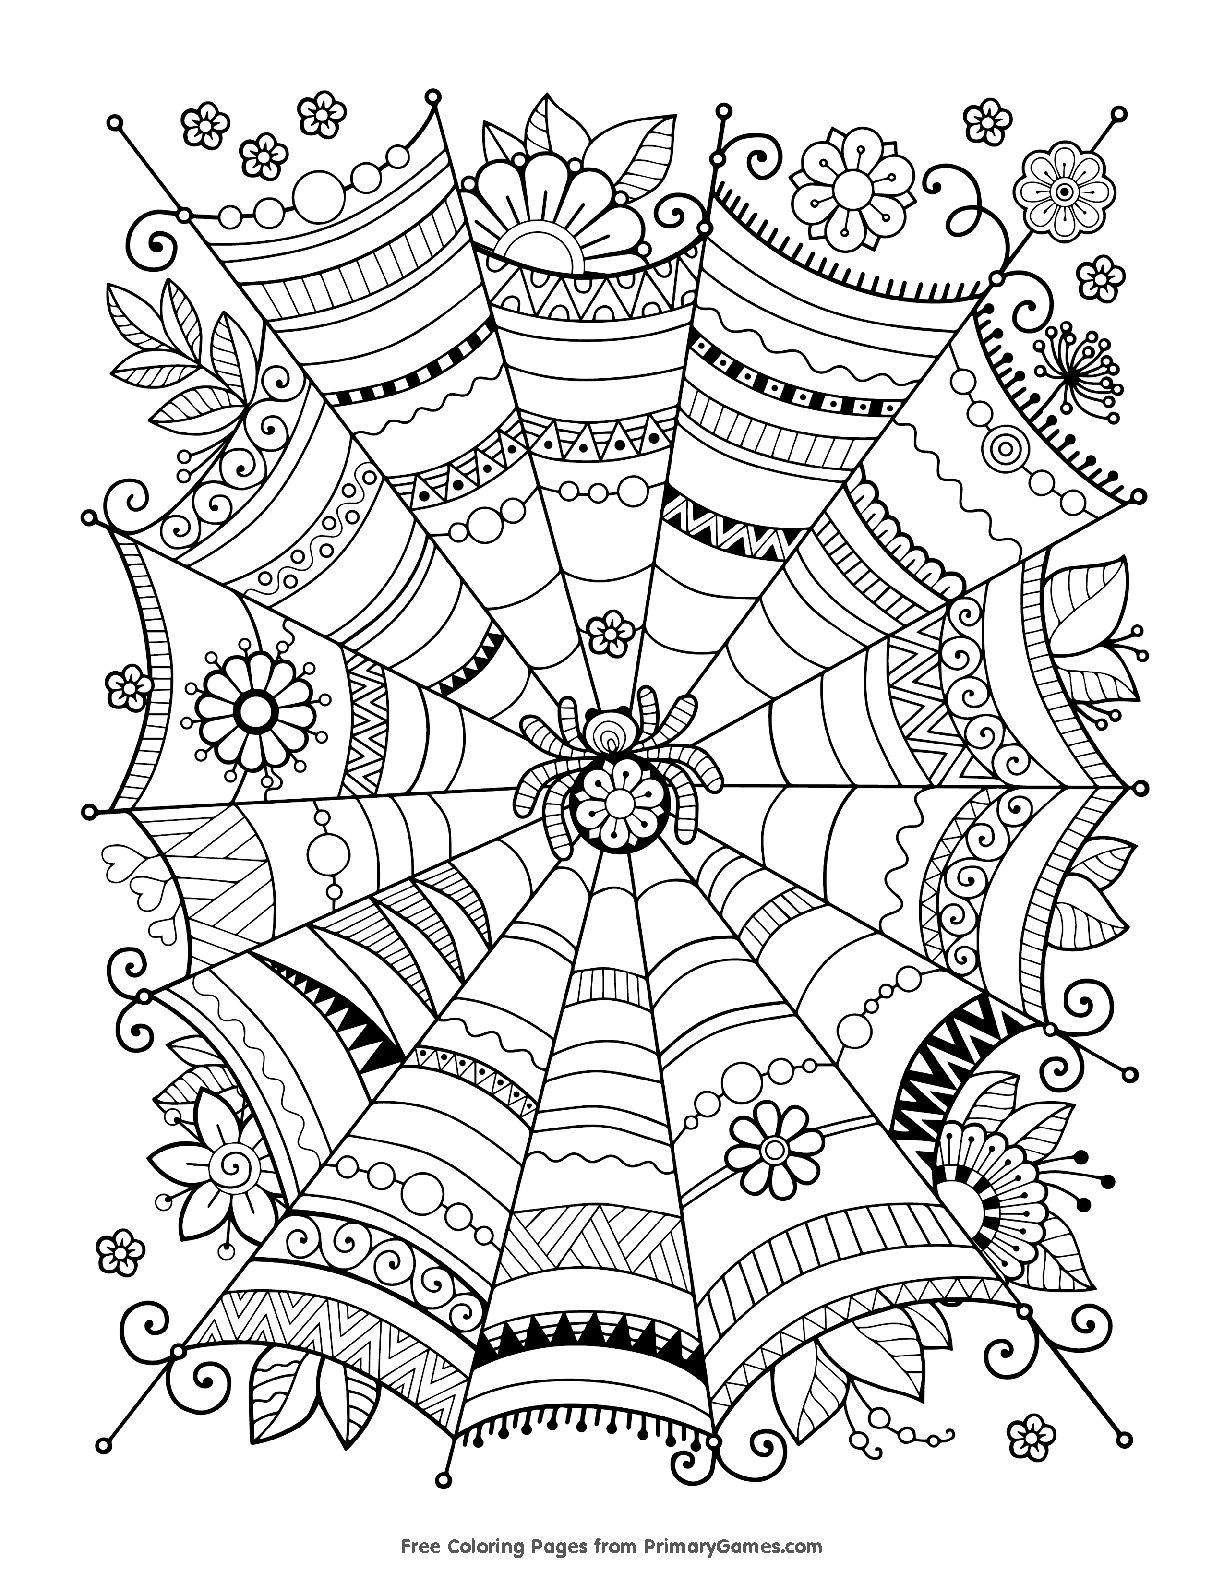 Pin by Pam Reid on Digi Stamps Pinterest Doodles Adult coloring